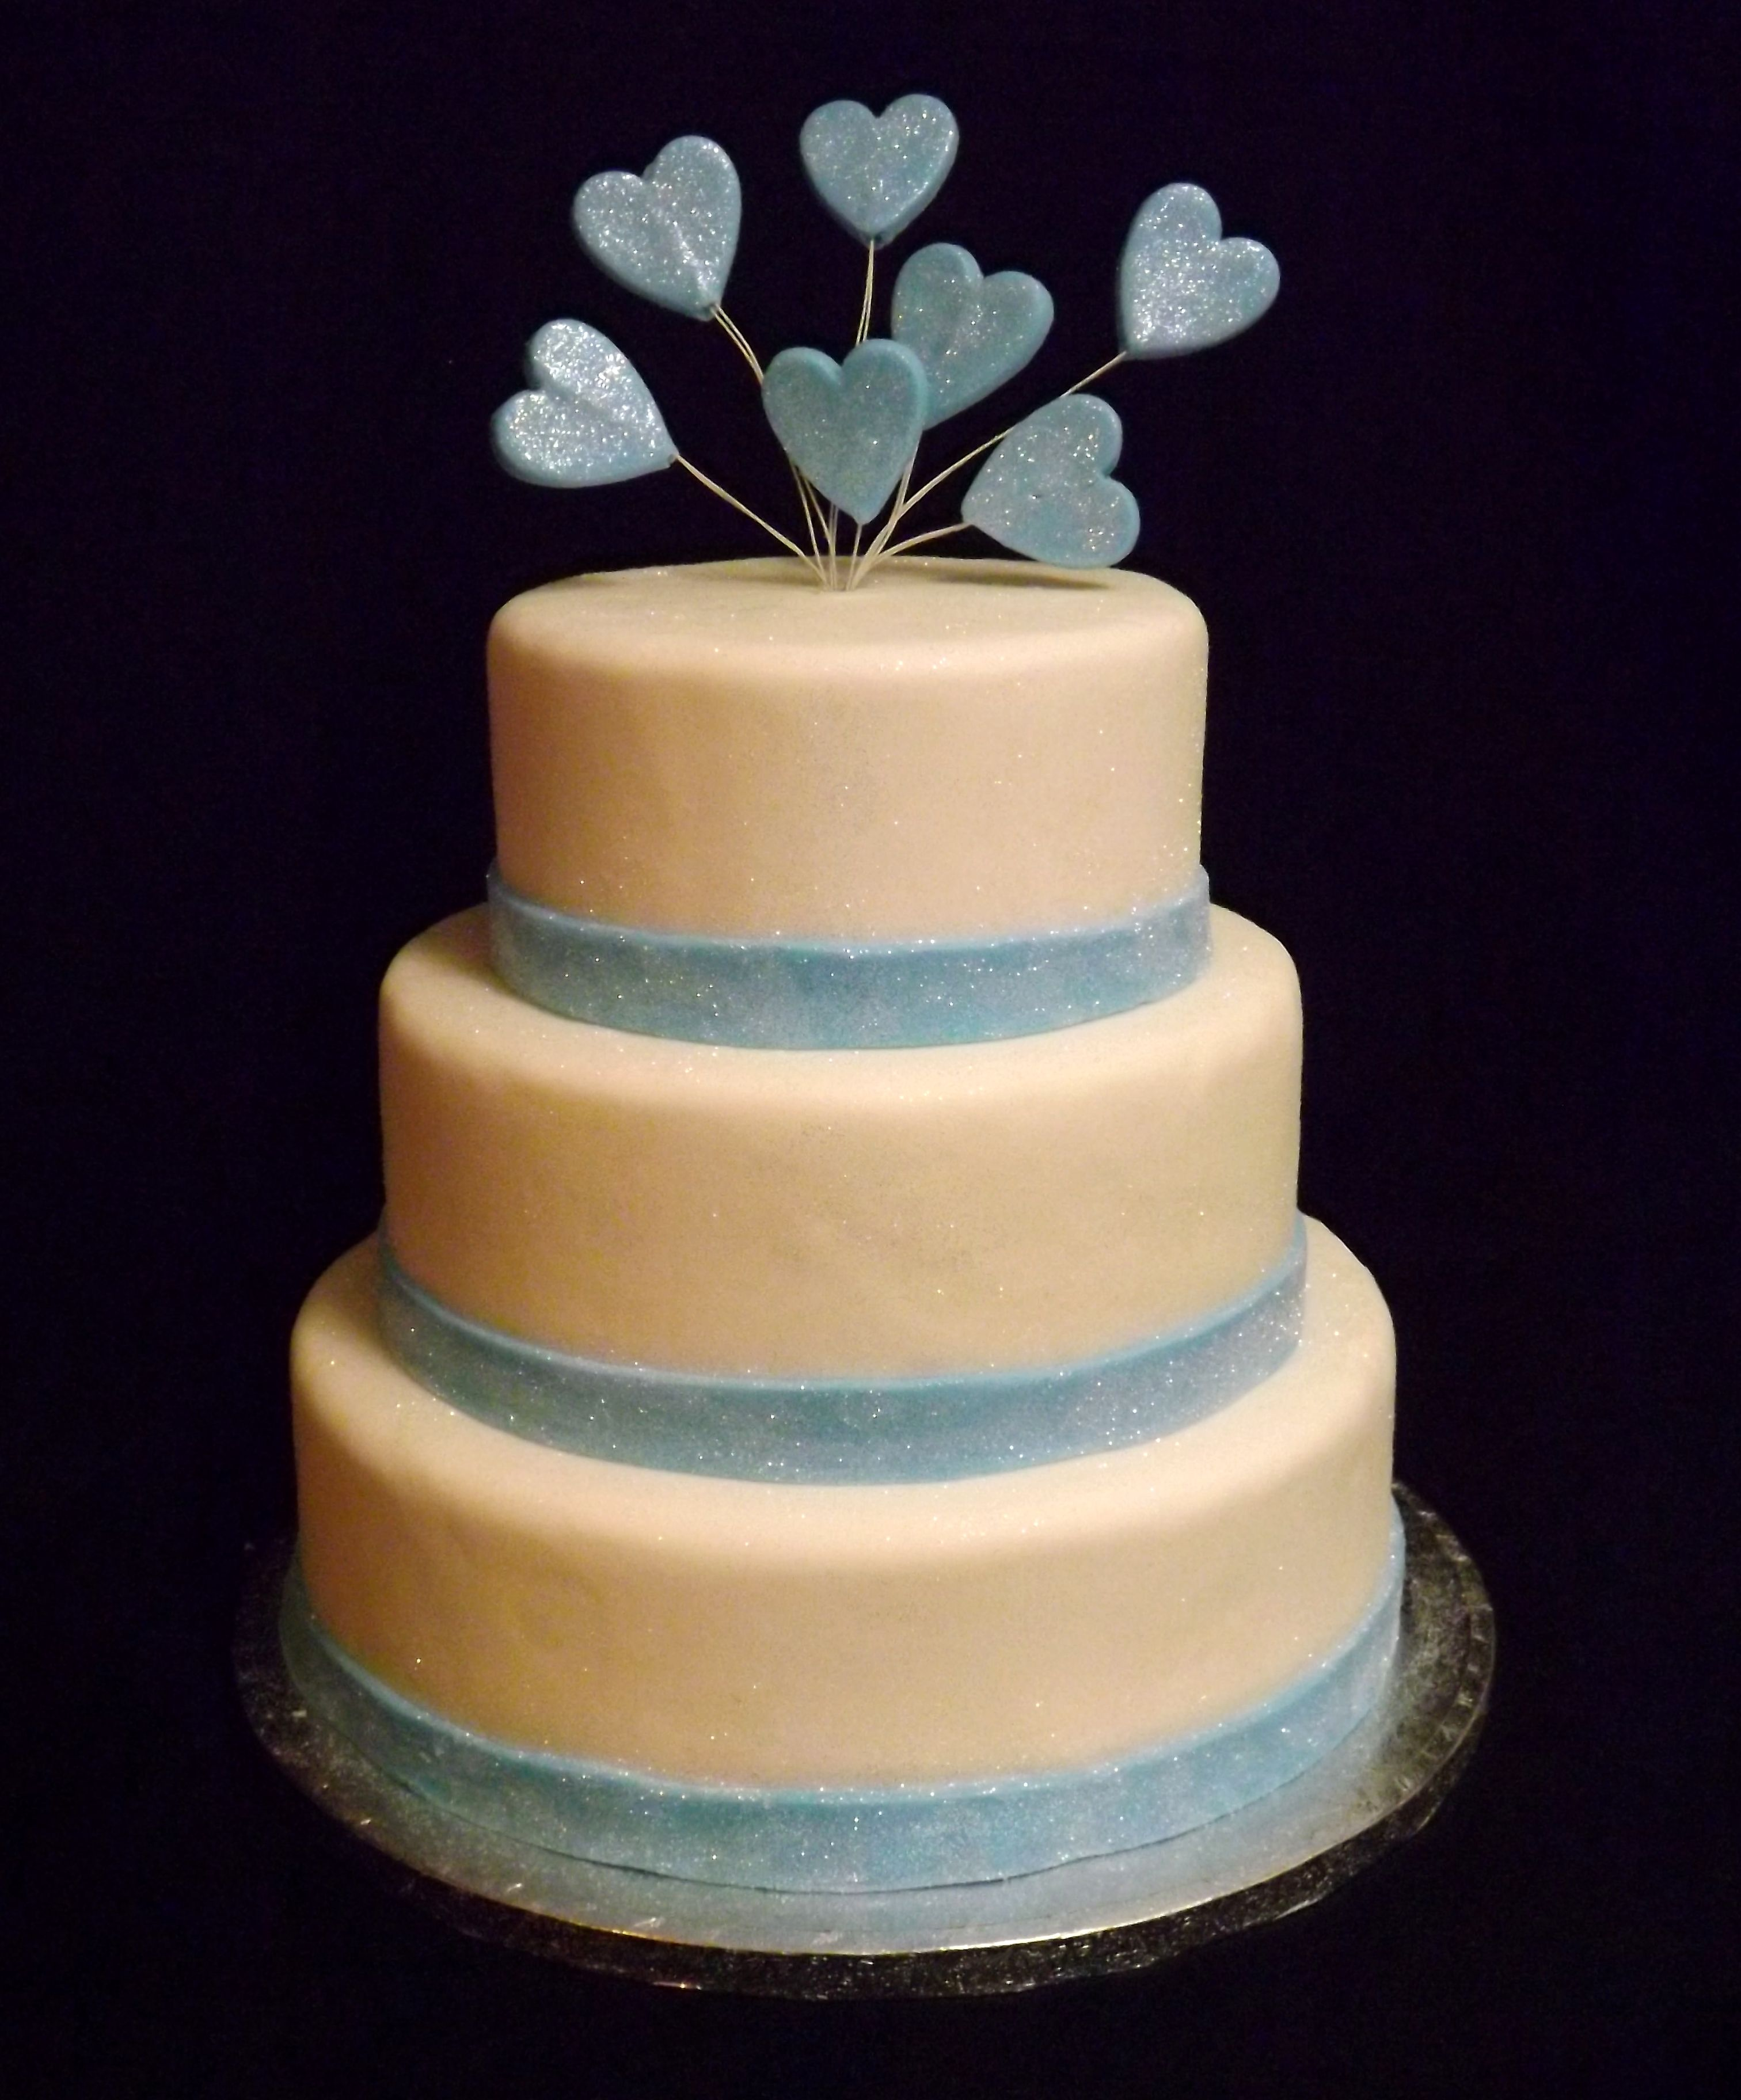 Simple White Wedding Theme: 3 Tier Simple White Wedding Cake With Glittered Baby Blue